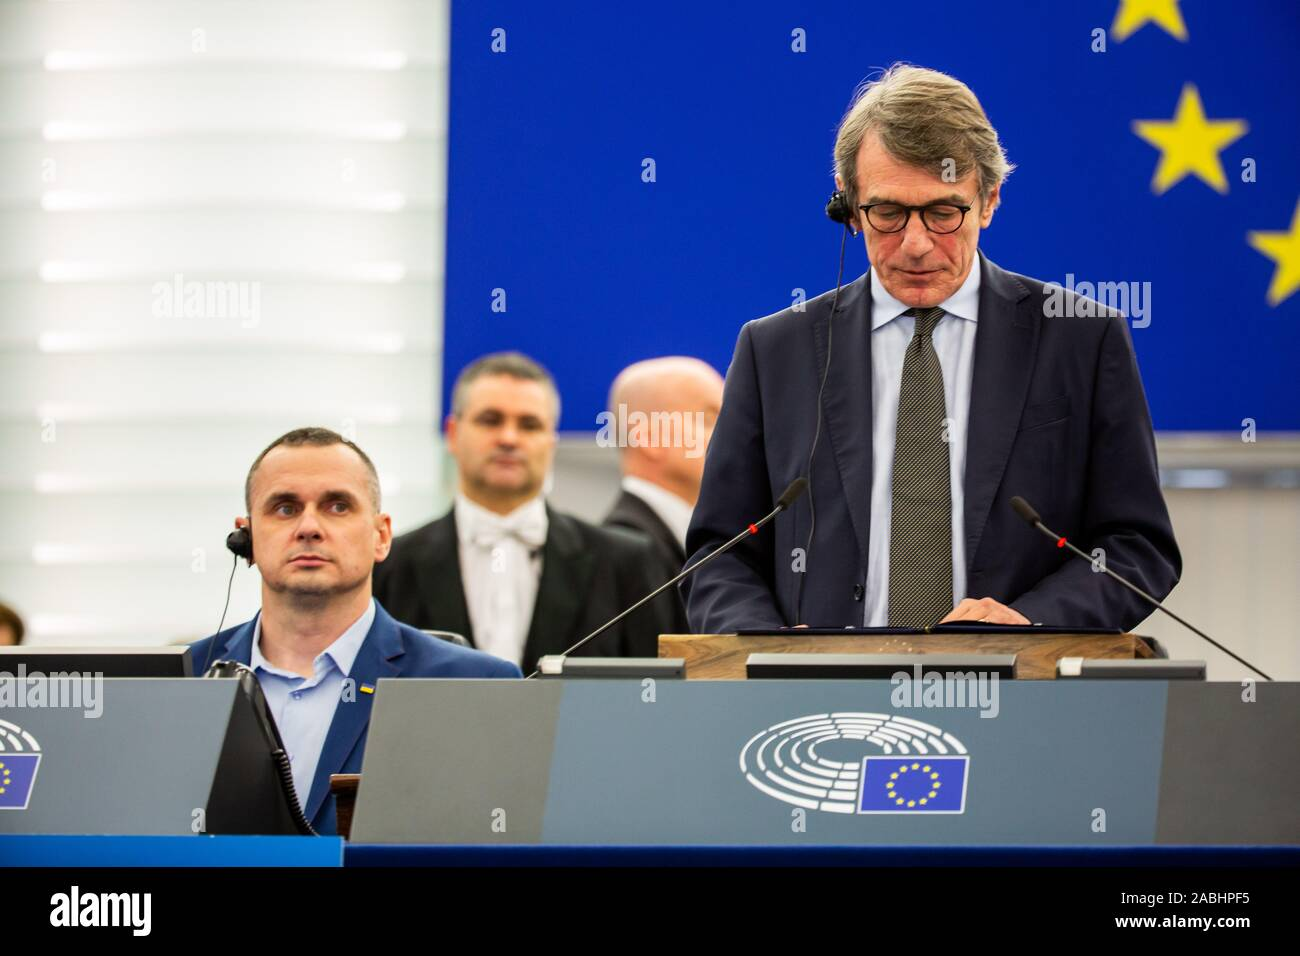 26 November 2019, France (France), Straßburg: The Ukrainian film director and former political prisoner Oleg Senzow (l-r) sits in the plenary hall of the European Parliament during the laudation by the President of the European Parliament David Sassoli on the occasion of the award of the Sakharov Prize for Freedom of Thought to Senzow. Senzow was imprisoned in Russia from May 2014 to September 2019. Photo: Philipp von Ditfurth/dpa Stock Photo